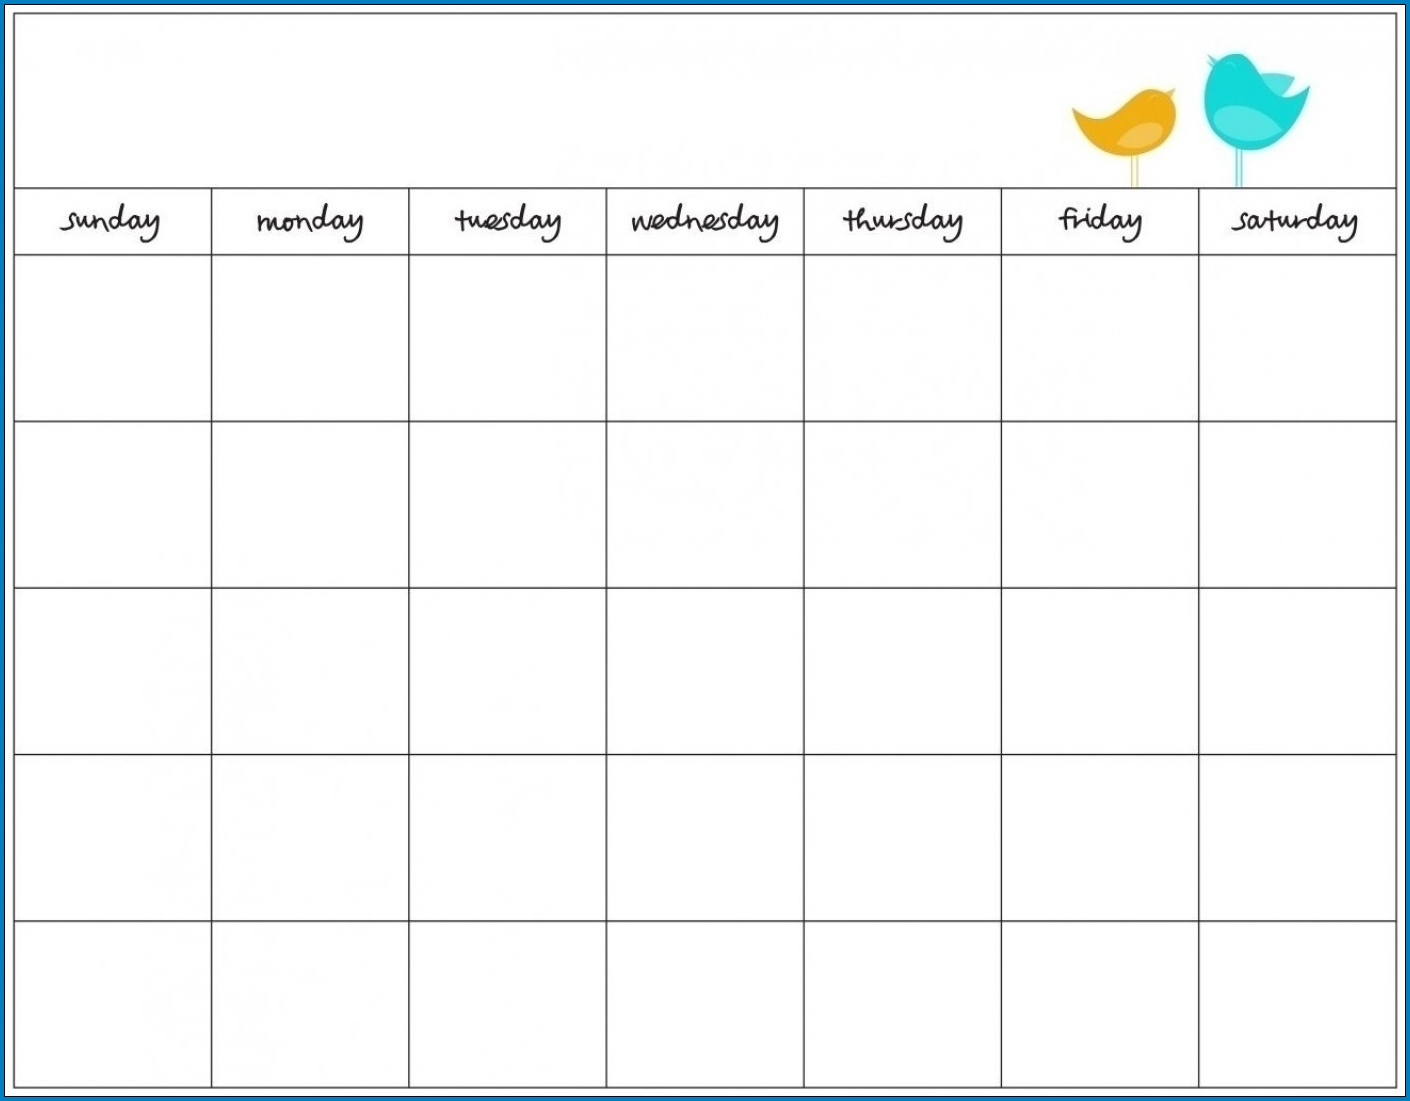 √ Free Printable 7 Day Schedule Template | Templateral